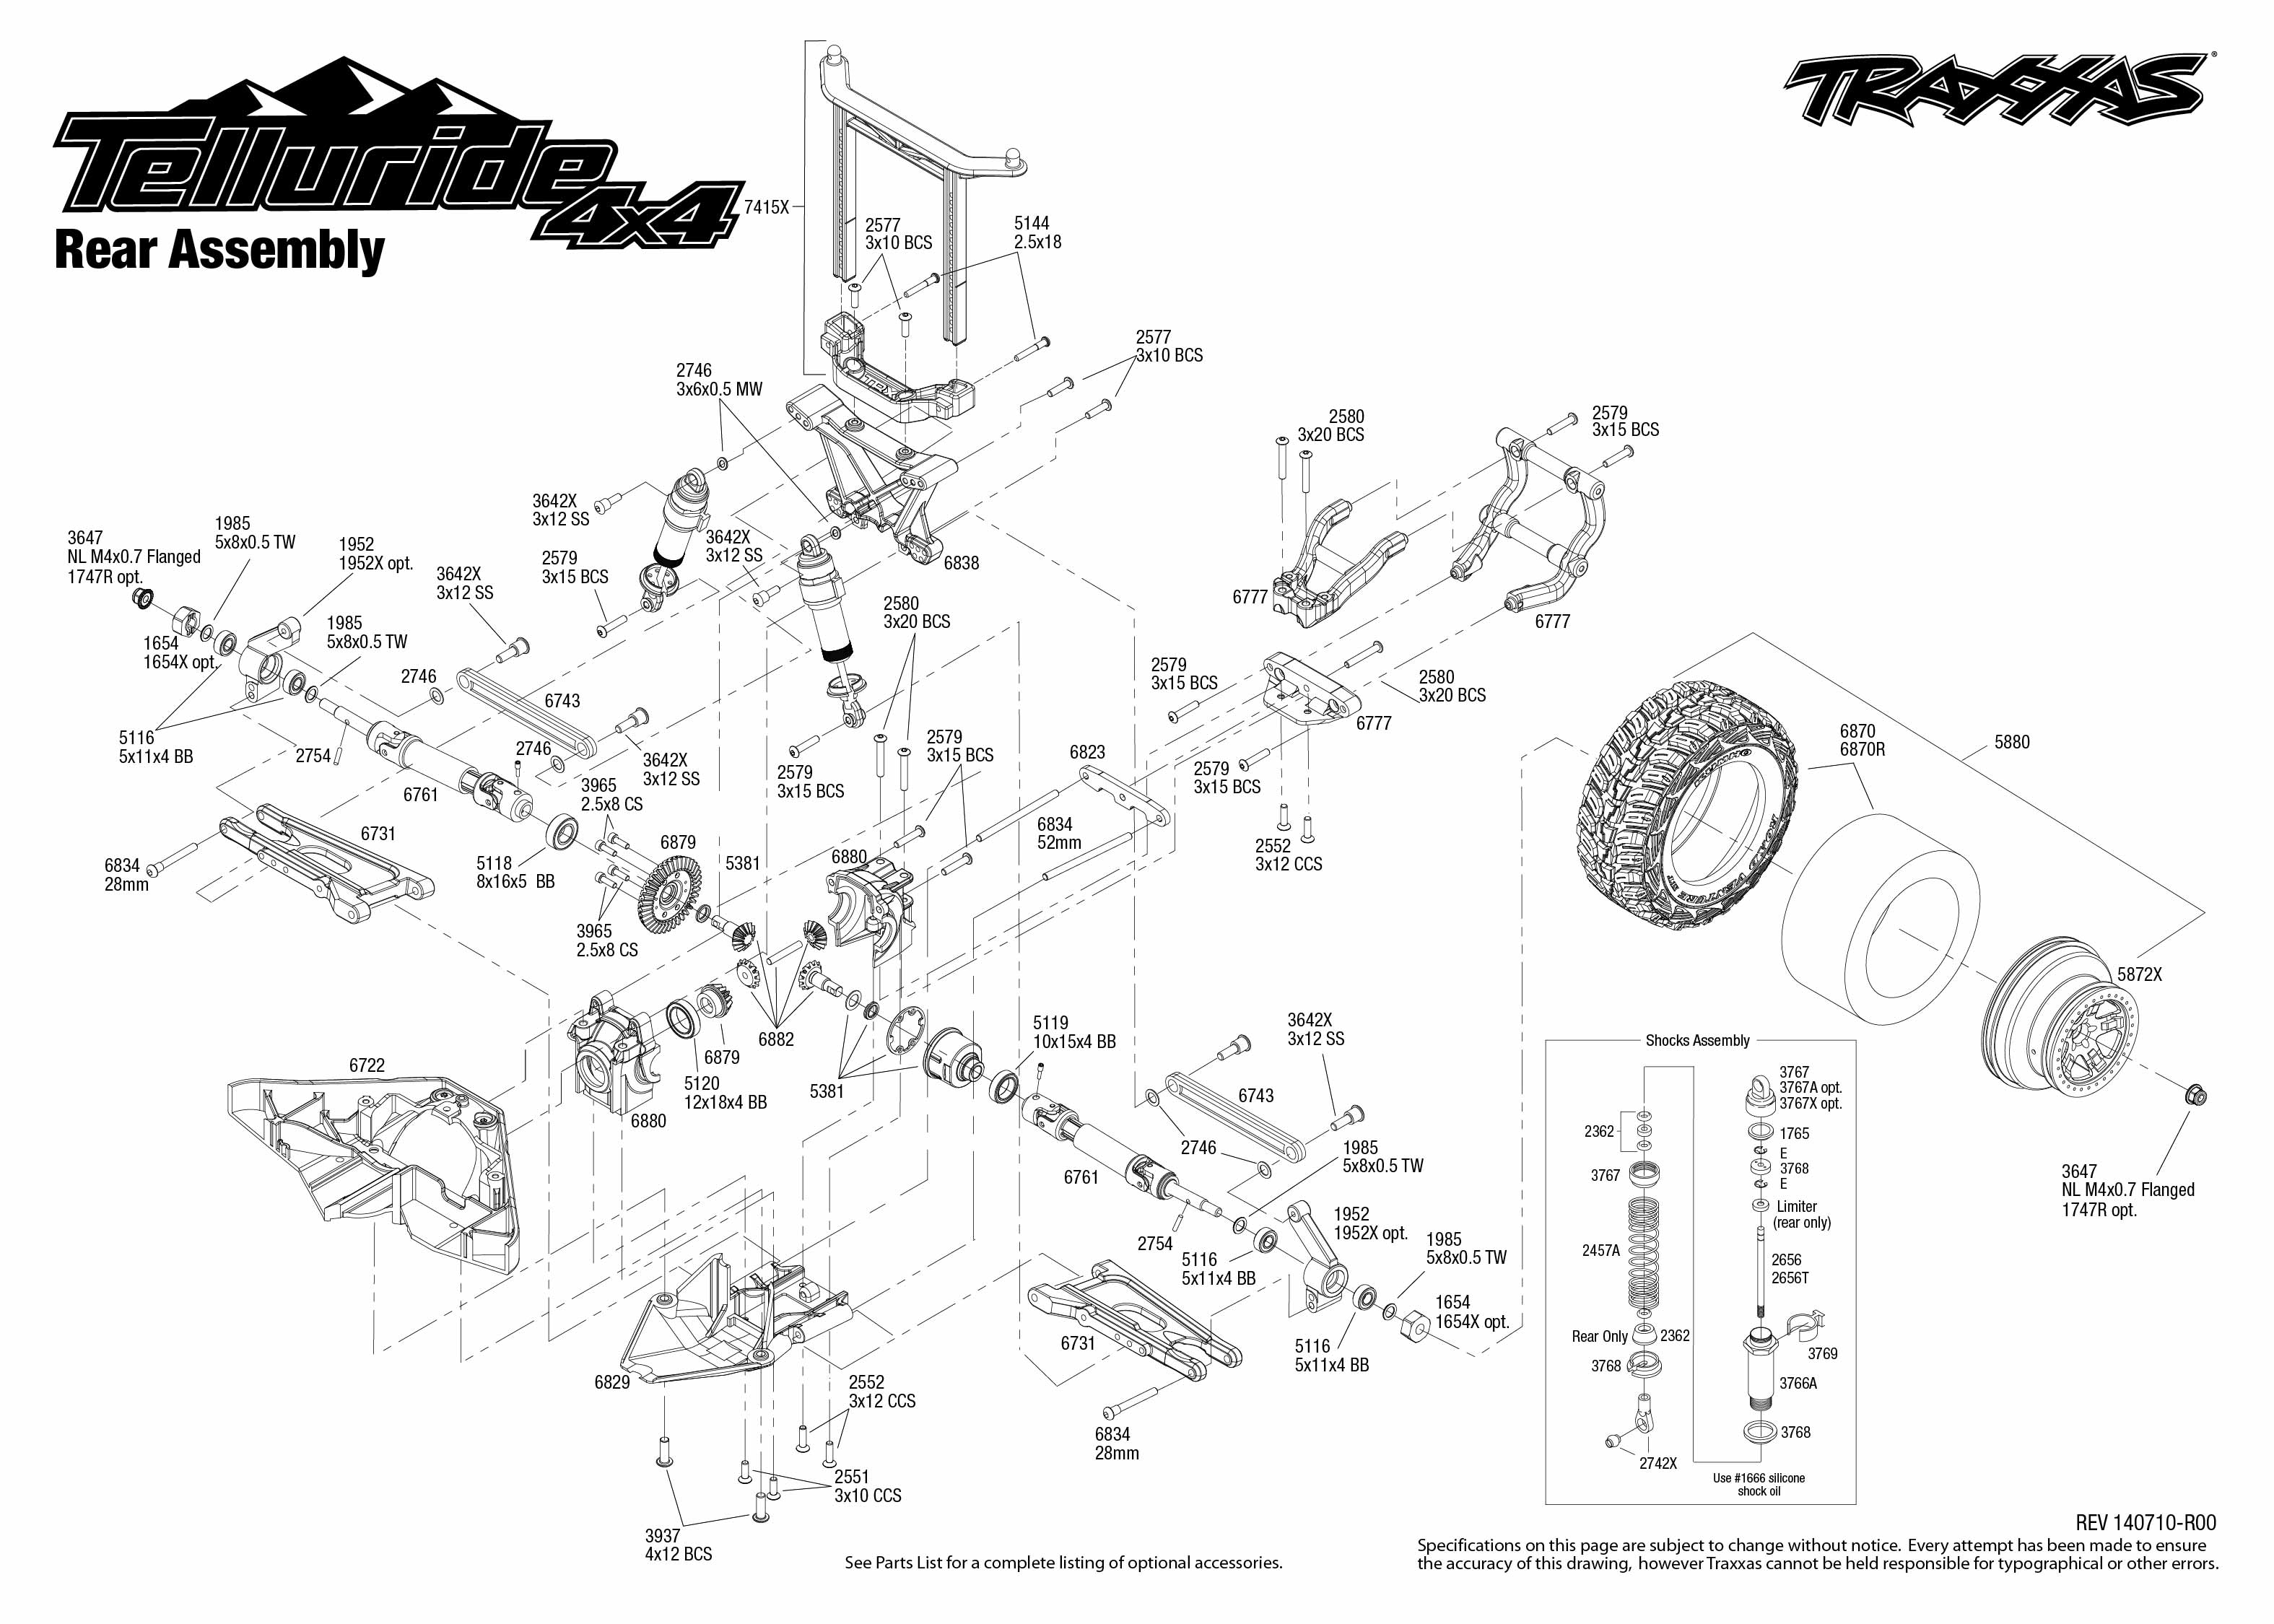 1974 Sportster Wiring Schematics Data Schema 2000 Seadoo Diagram All Kind Of Diagrams 1976 Fj40 Coil 1994 Turn Signal Module Speakers